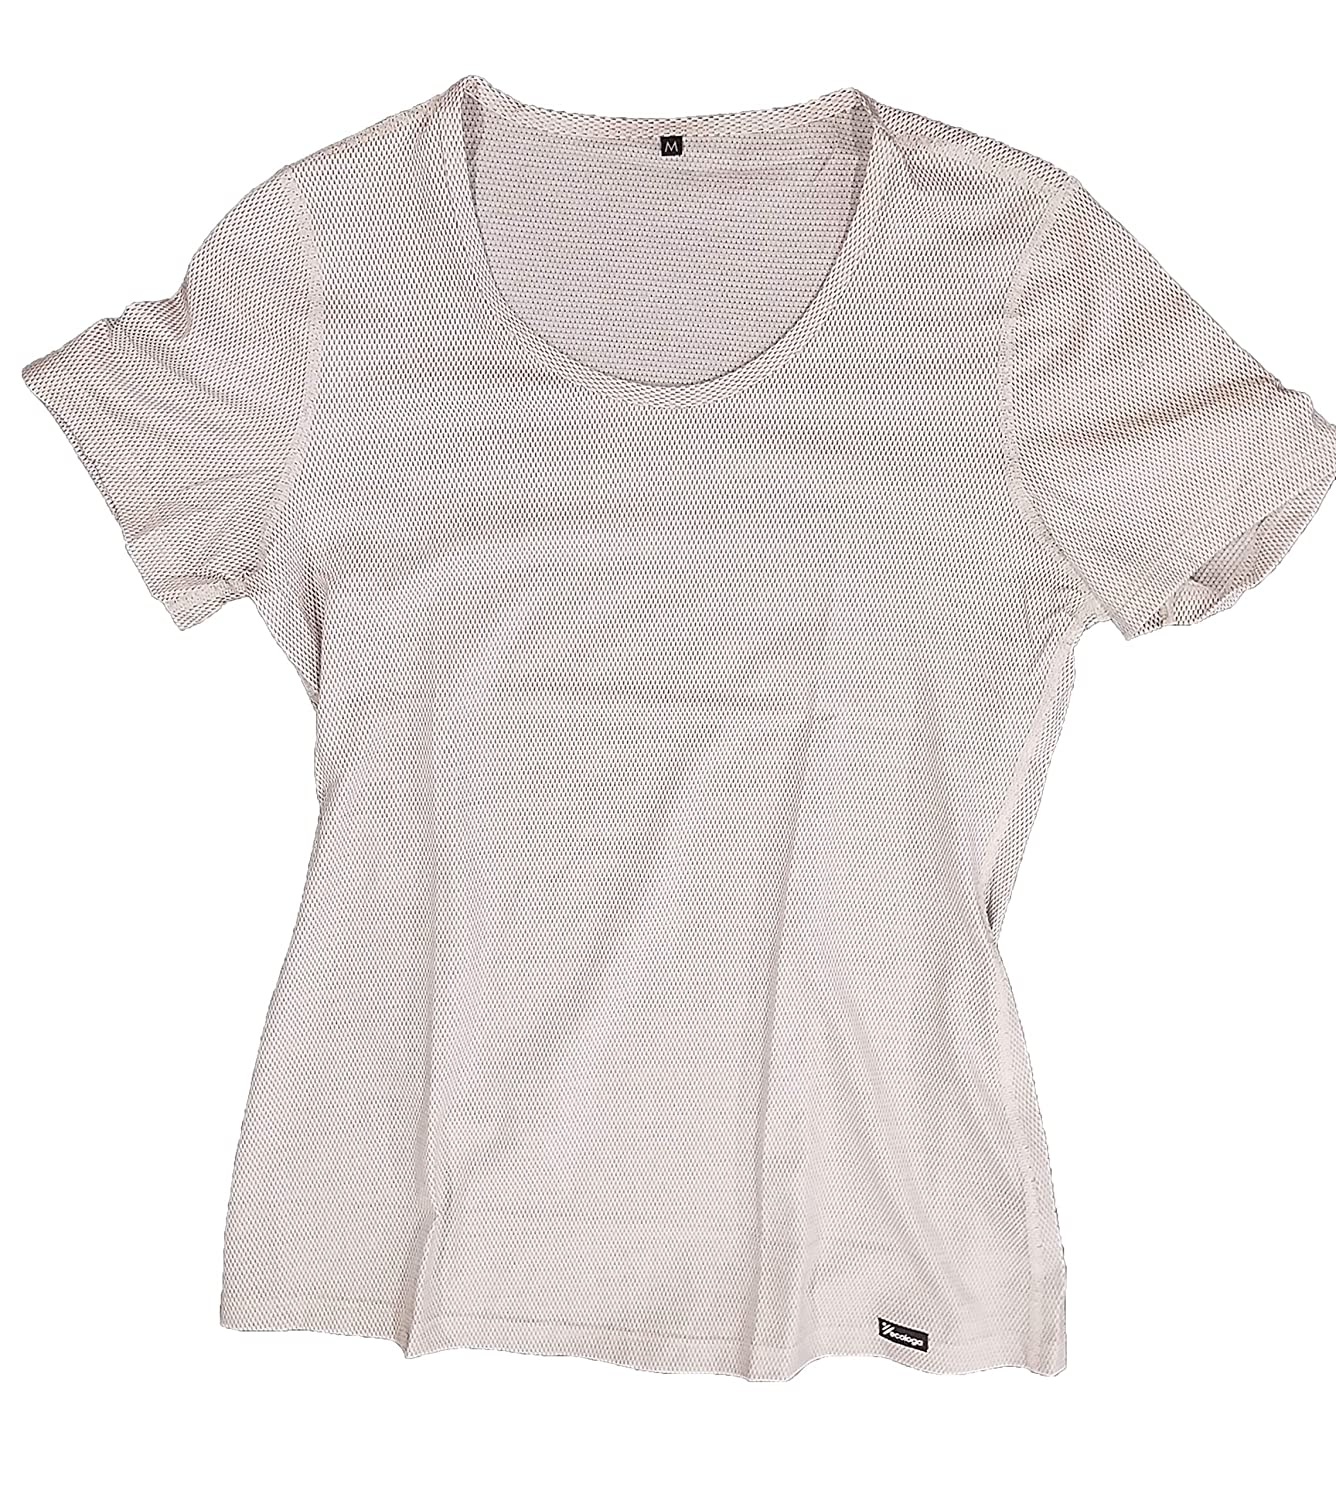 Small Gen-El Anti-Wave Womens T-Shirt fro Wireless Radiation Protection by ECOLOGA